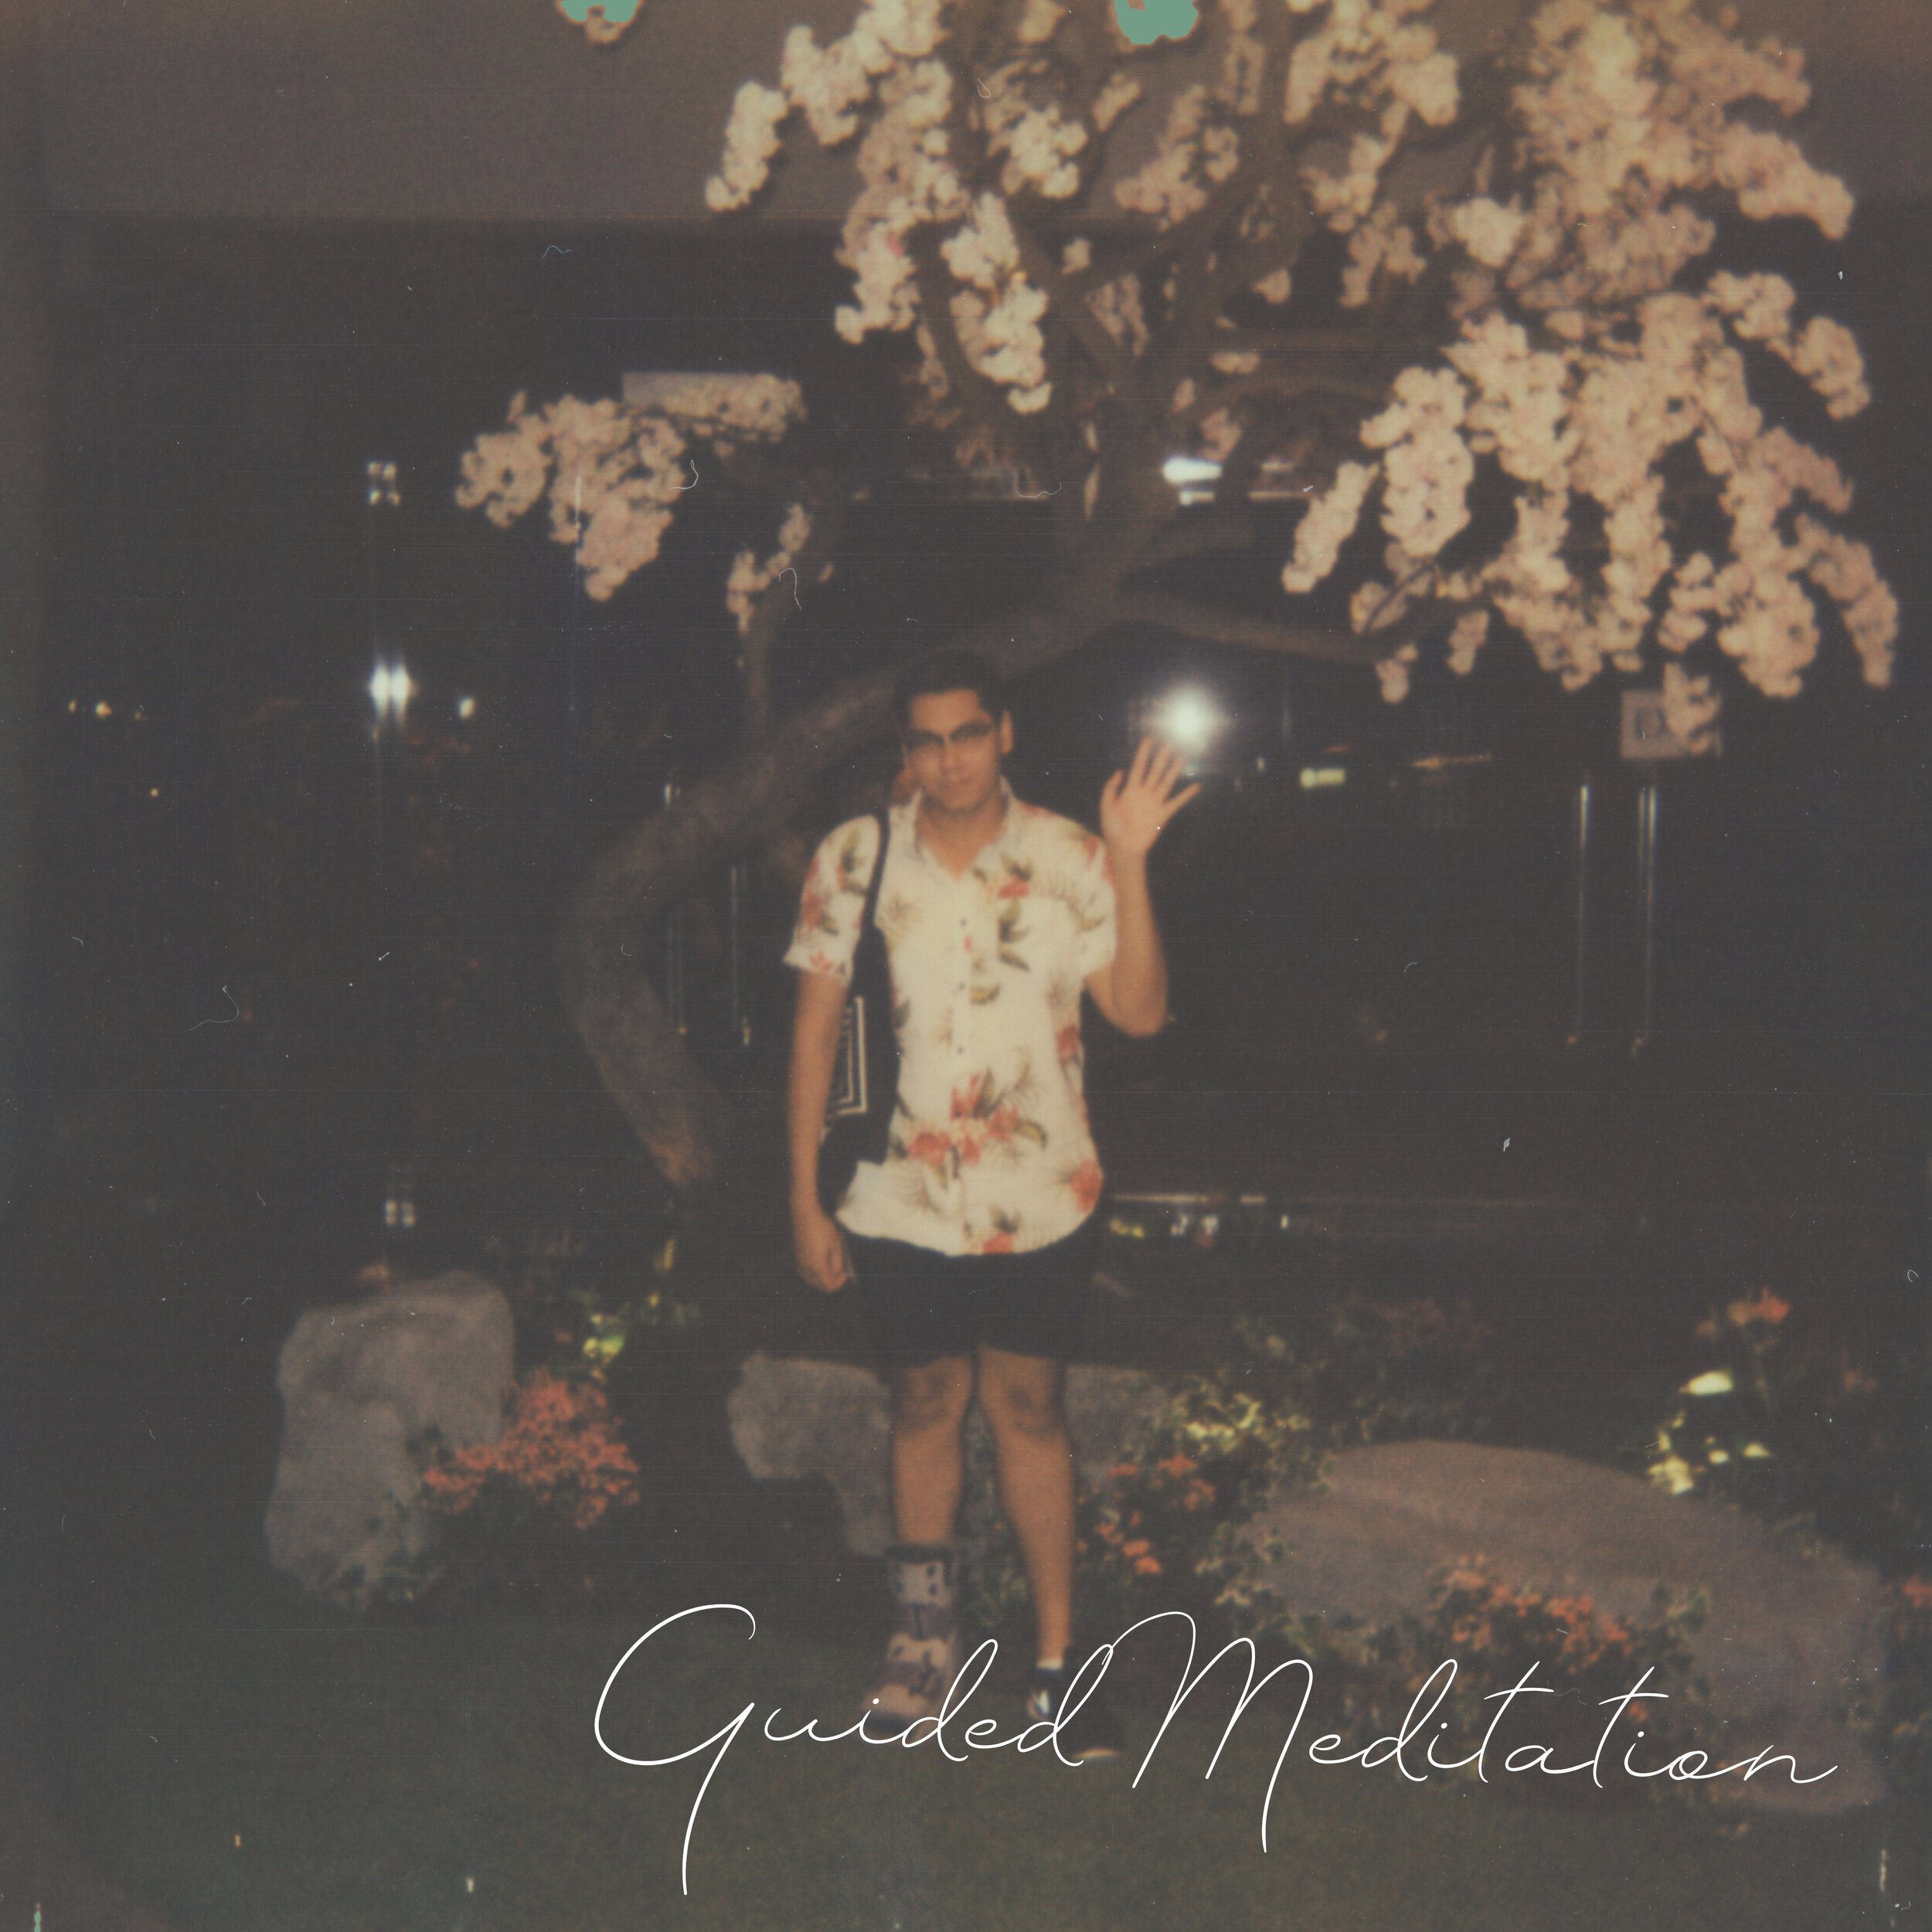 Guided Meditation - Guided Meditation will be venturing through an eclectic mix of jazz, boss nova, contemporary classical music and 60s pop ballads. He hopes for the music to sit comfortably in the background, where conversations take precedence – crafting the atmosphere for the rest of the evening.